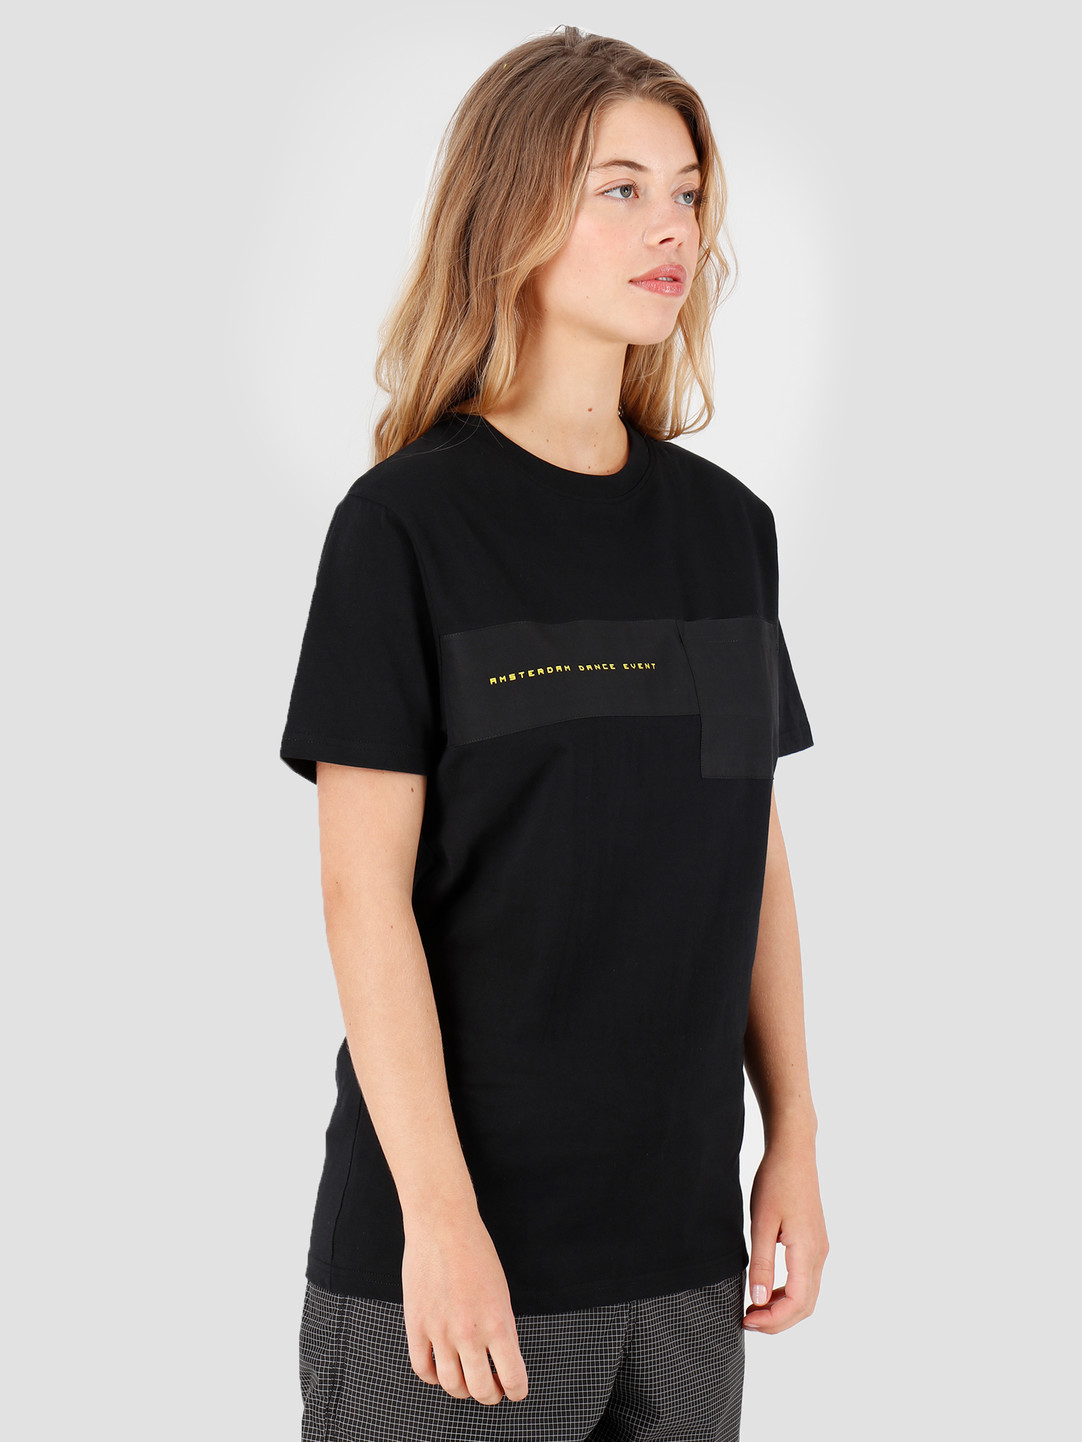 FRESHCOTTON x ADE FRESHCOTTON x ADE Cut and Sew T-shirt Black